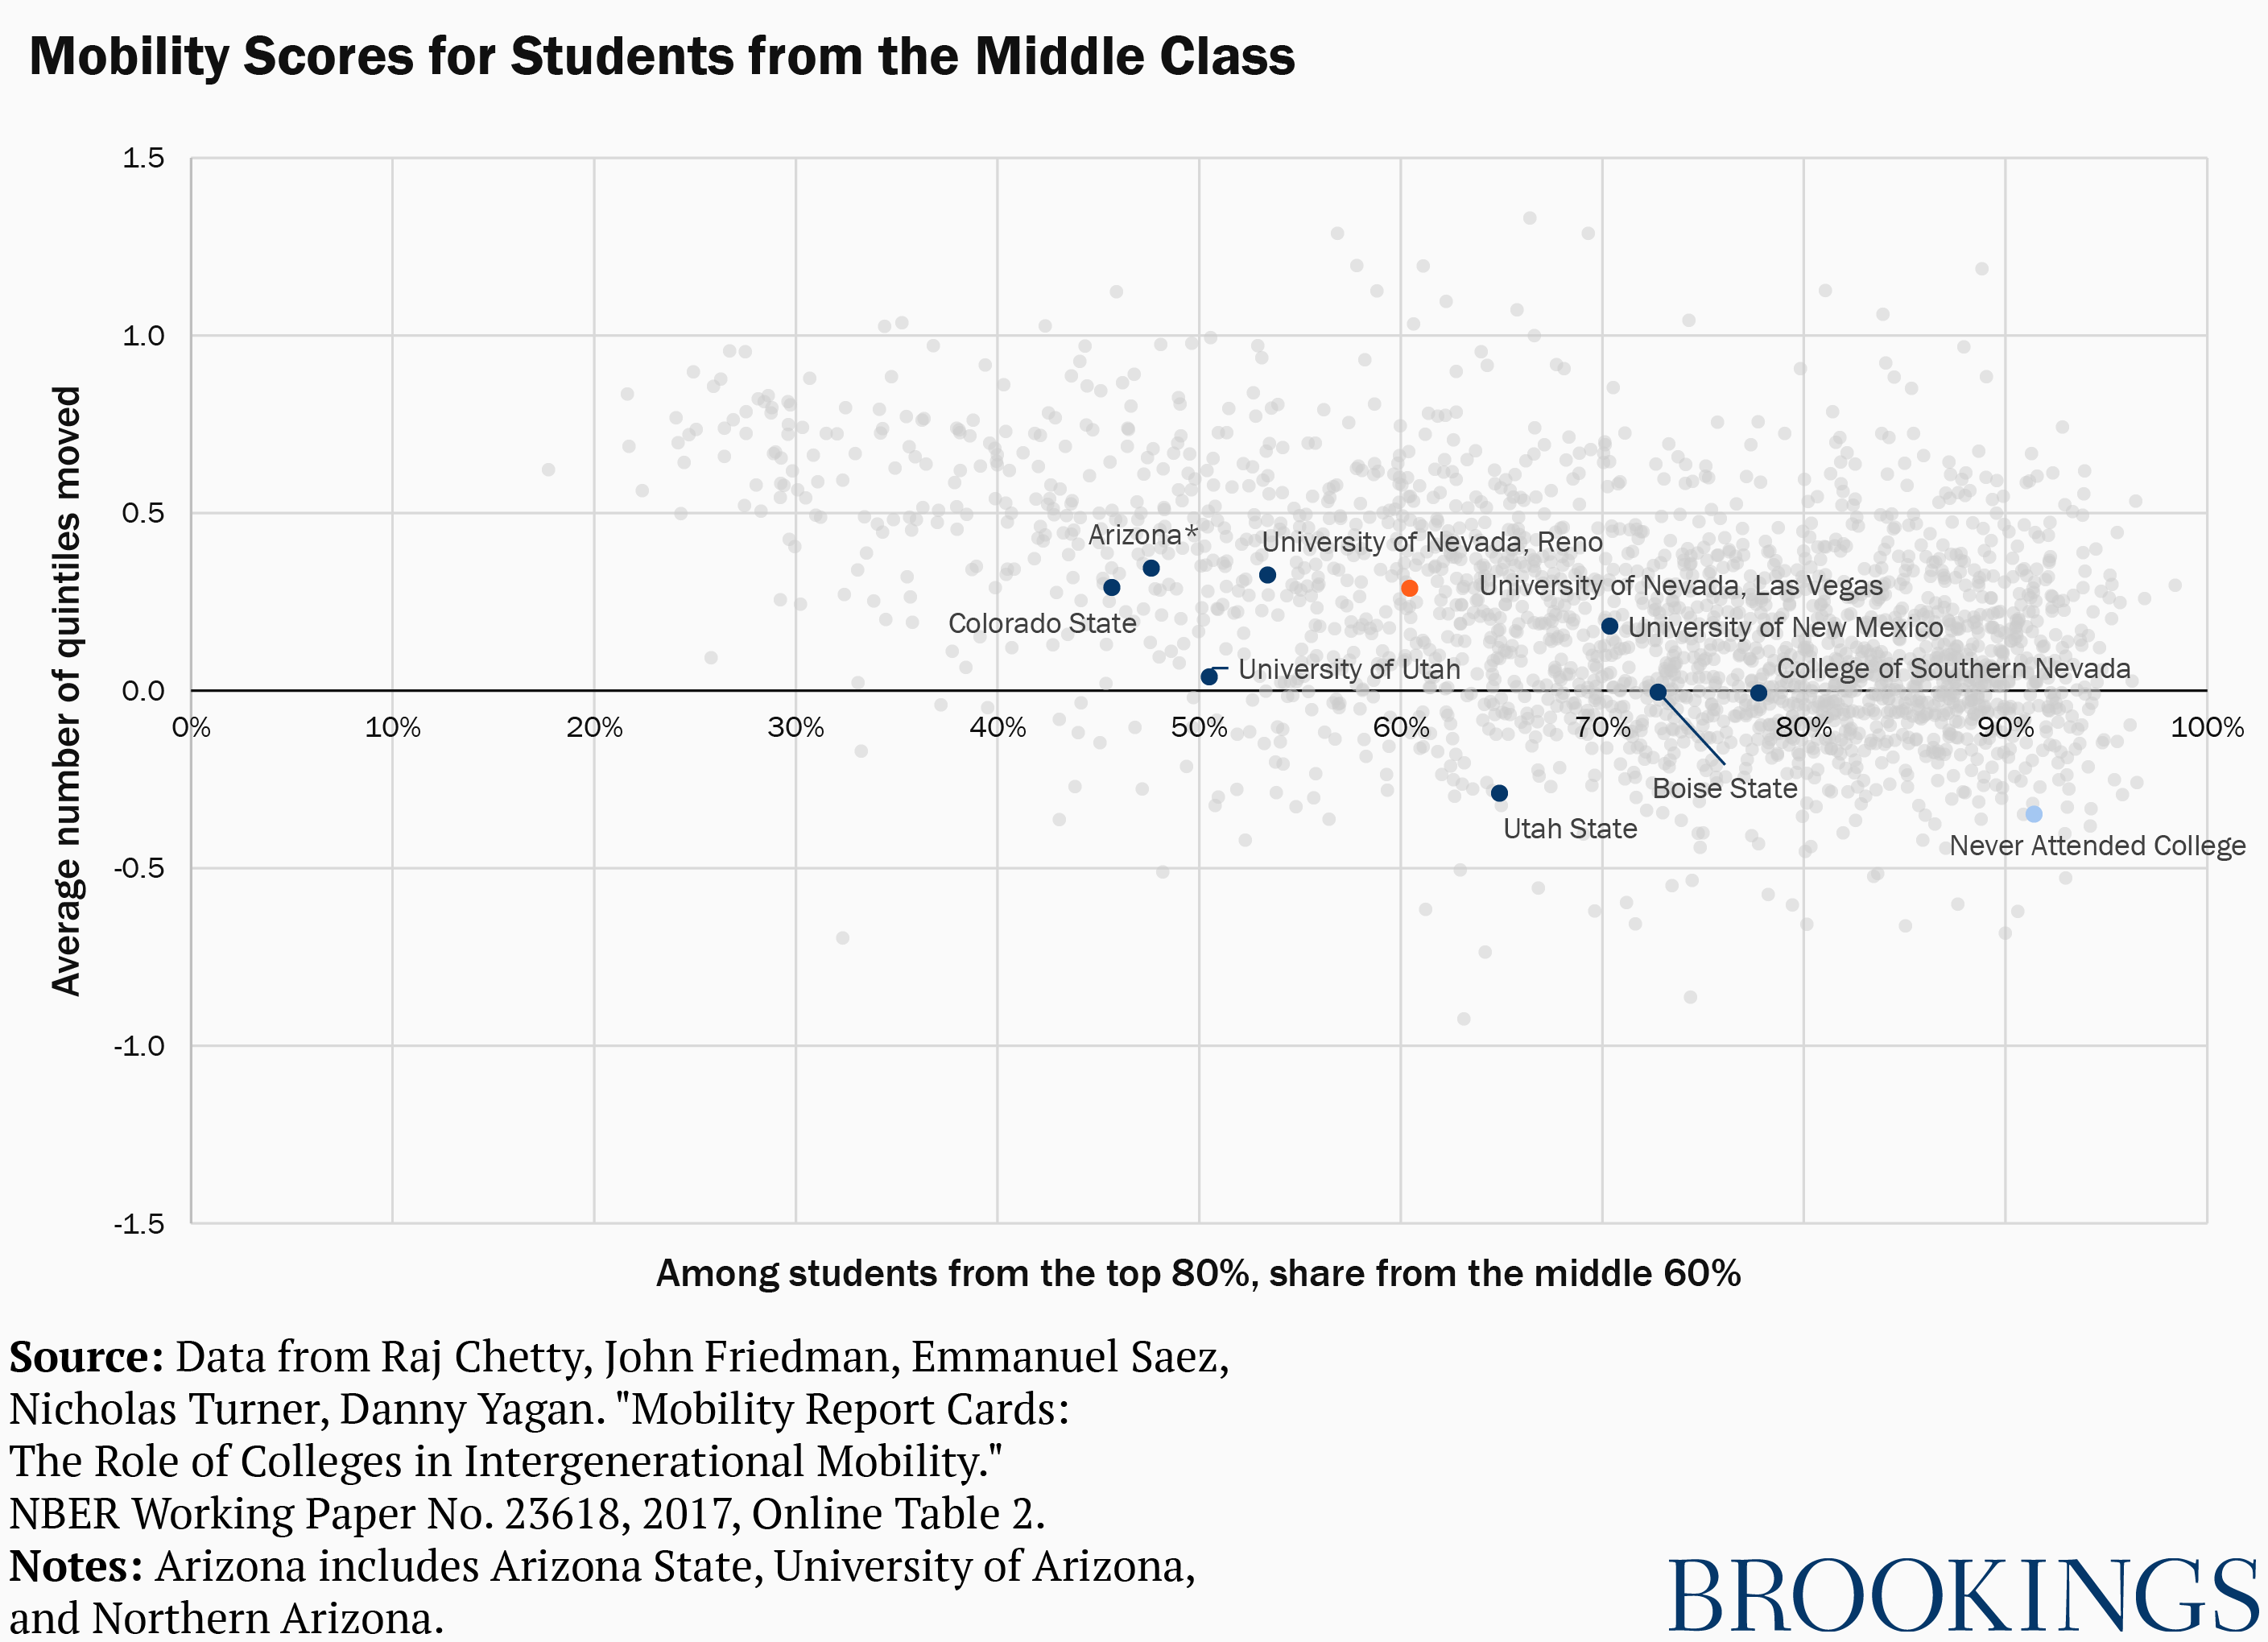 Middle-class mobility scores at colleges in the Mountain West